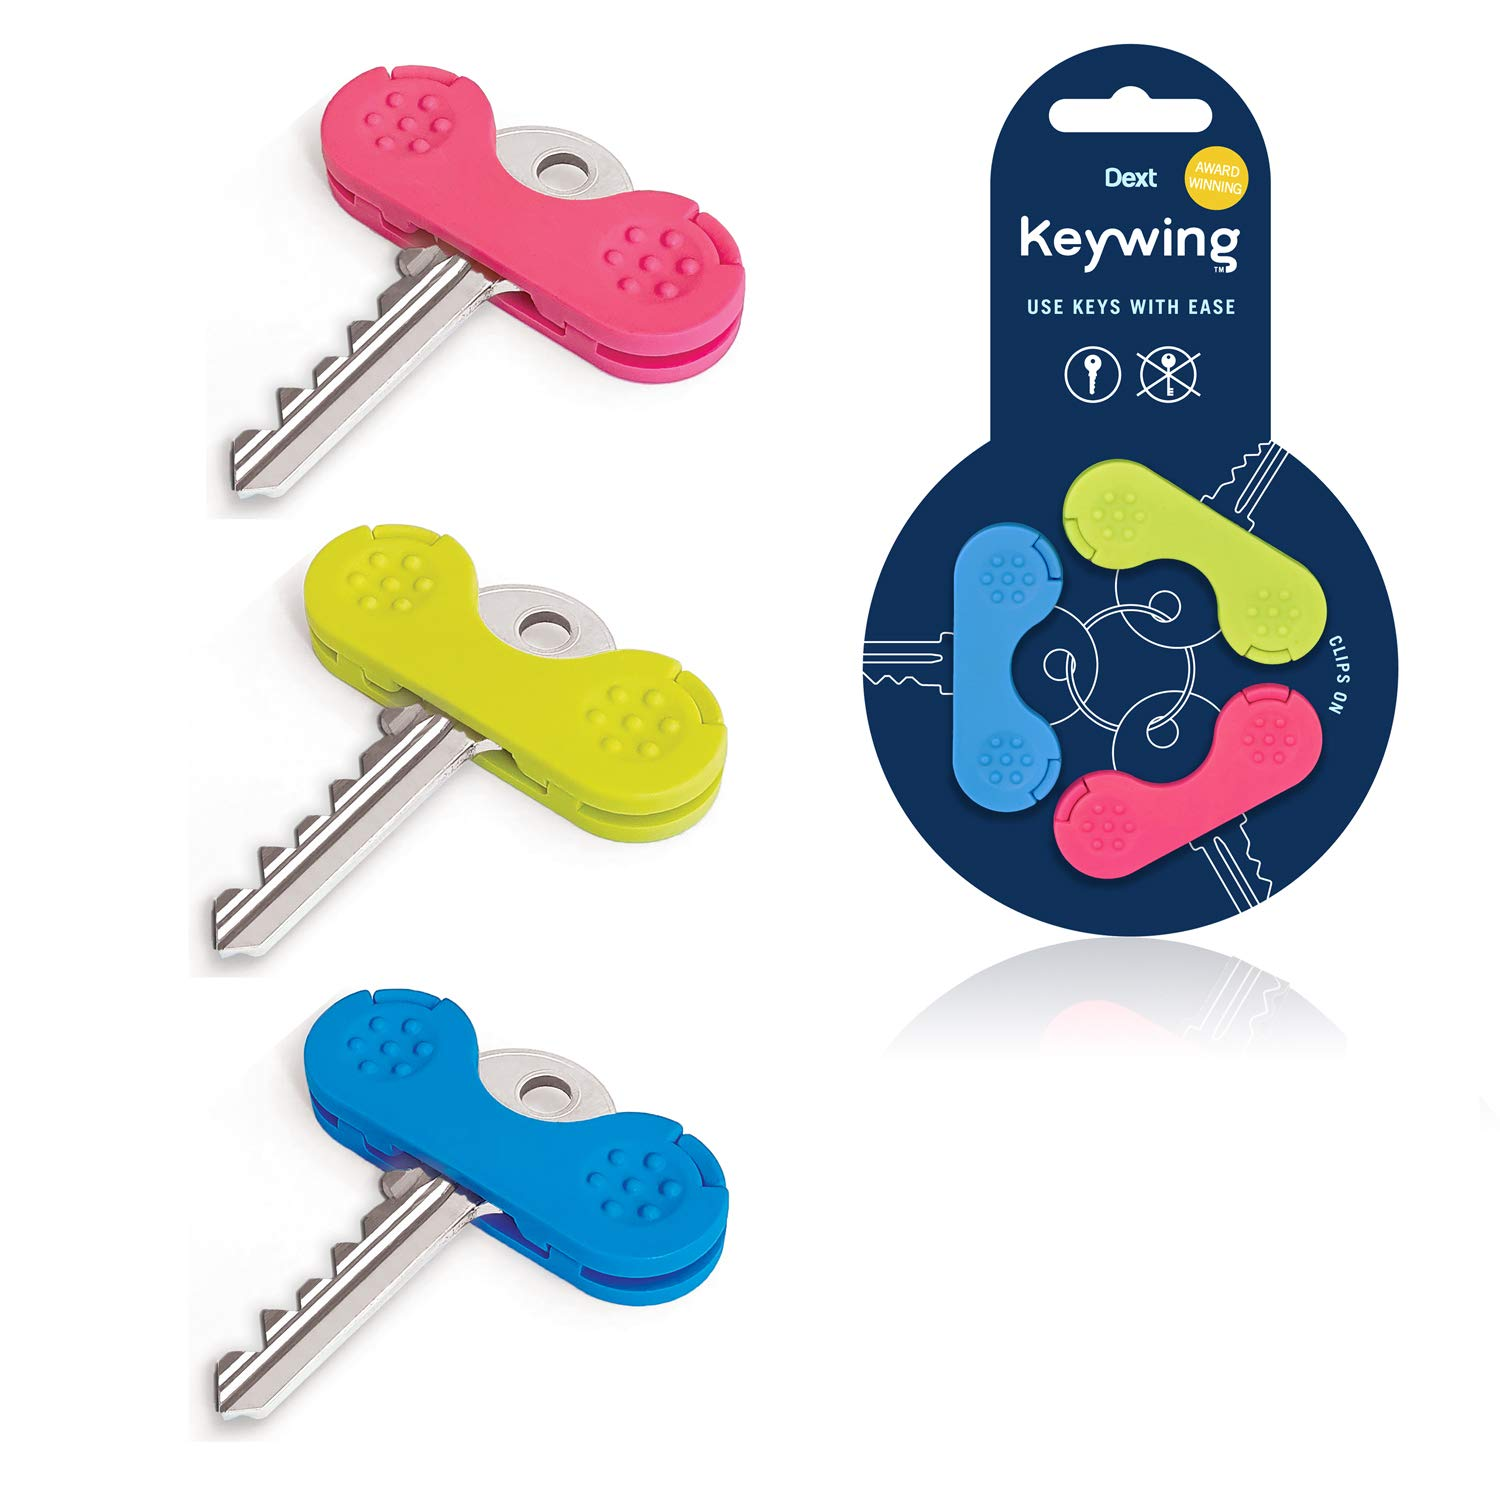 Keywing Key Turner Aid. Triple Pack. Award Winning. Makes Keys Easier to find, Grip and Turn. Perfect Thumb Turn for Arthritis, Elderly, MS, Parkinsons. Weak Grip & Hand aid to use Keys with Ease. by Dext